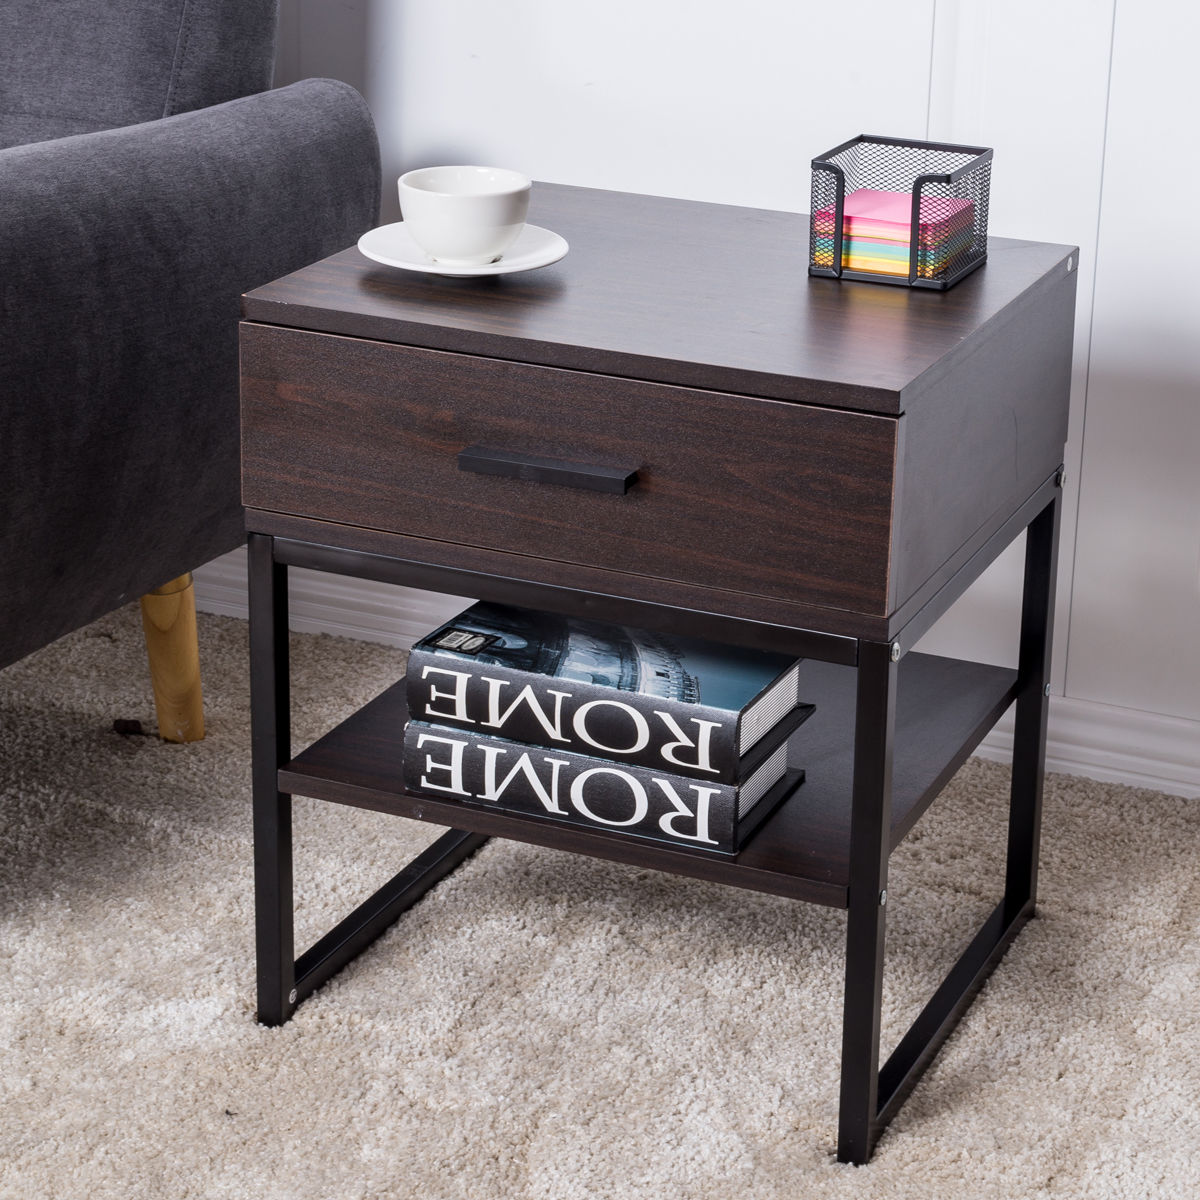 Giantex End Table Bedroom Night Stand Table Modern Wood Shelf Storage Drawer Home Display Nightstand Bedroom Furniture HW55452 1 night stand